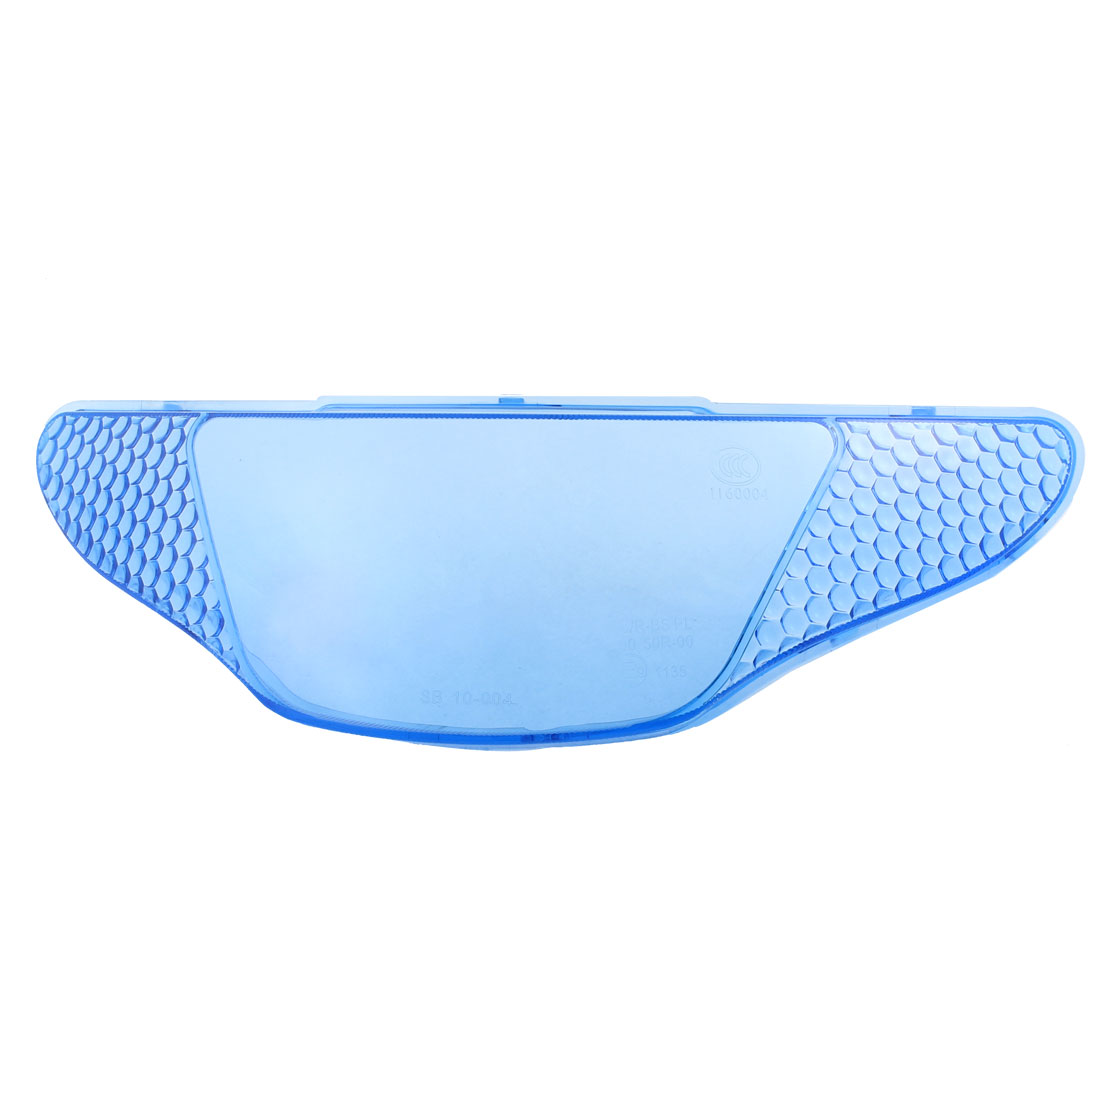 Blue Clear Plastic Rear Light Cover for Motorcycle Motorbike